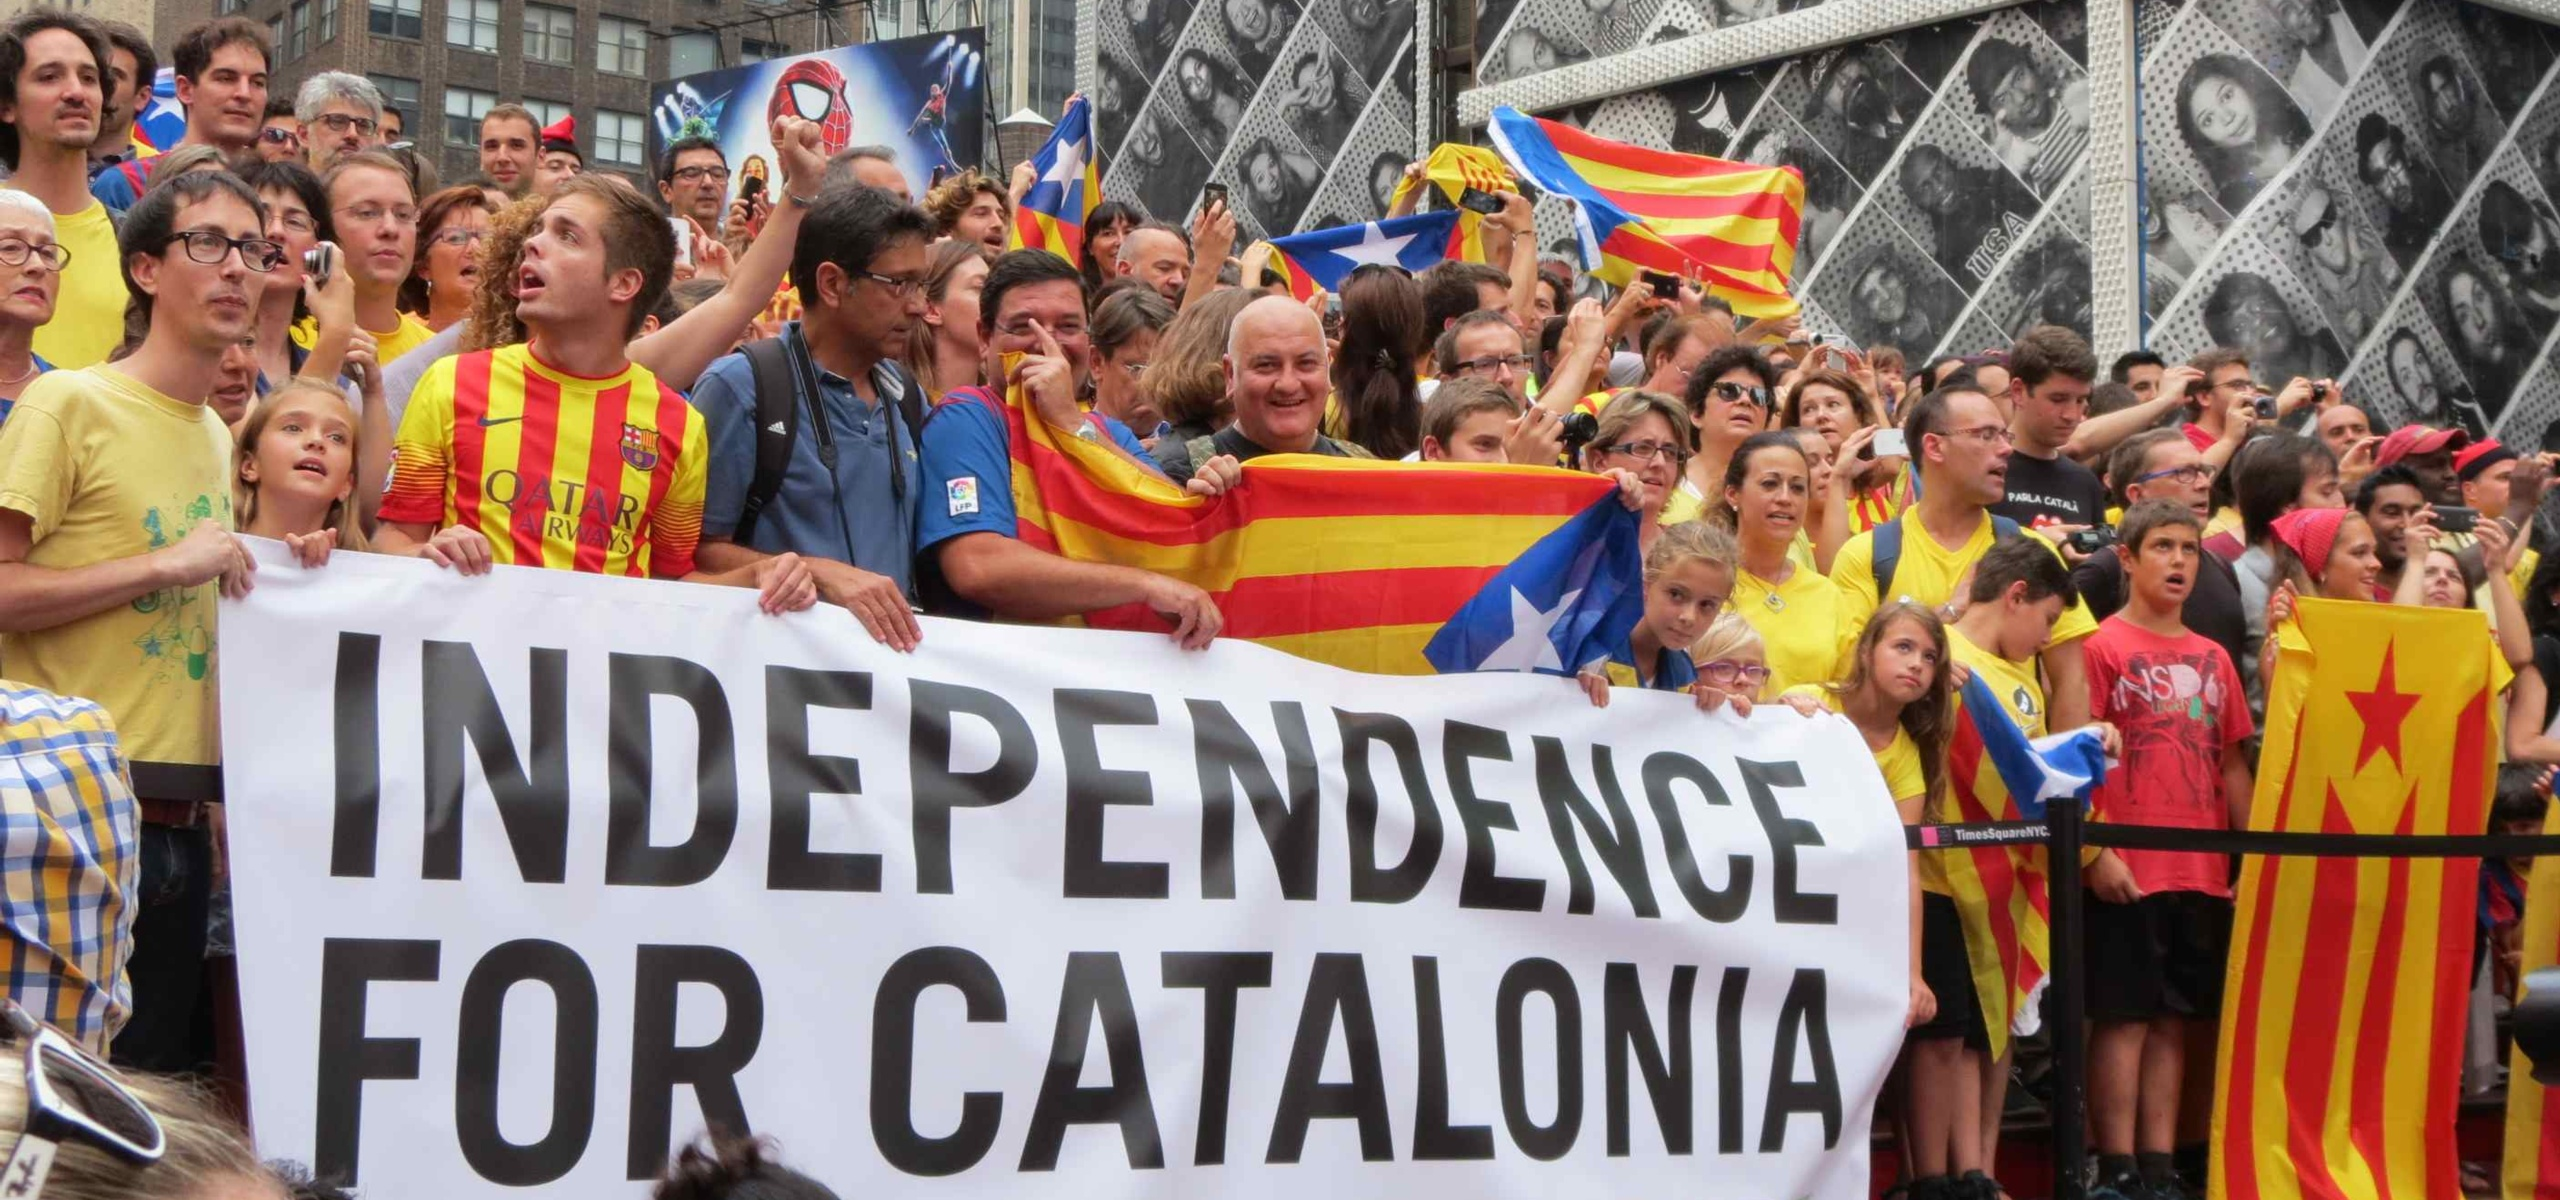 The Season of Self-Determination: An Analysis of Catalonia's Independence Referendum